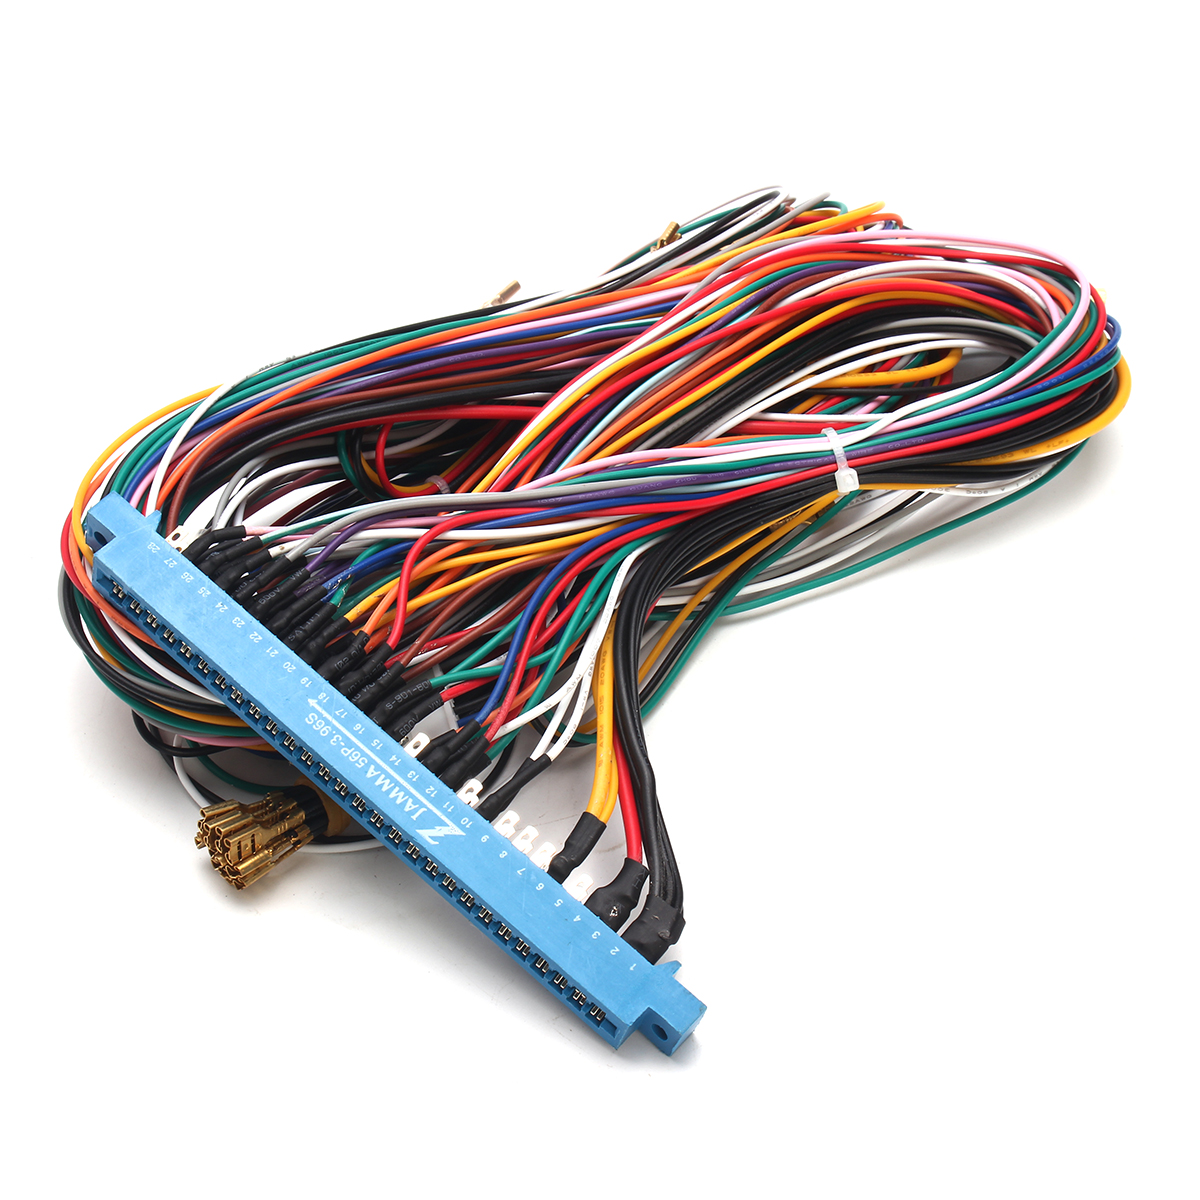 hight resolution of 28 pin jamma harness wire wiring loom for arcade game pcb video game